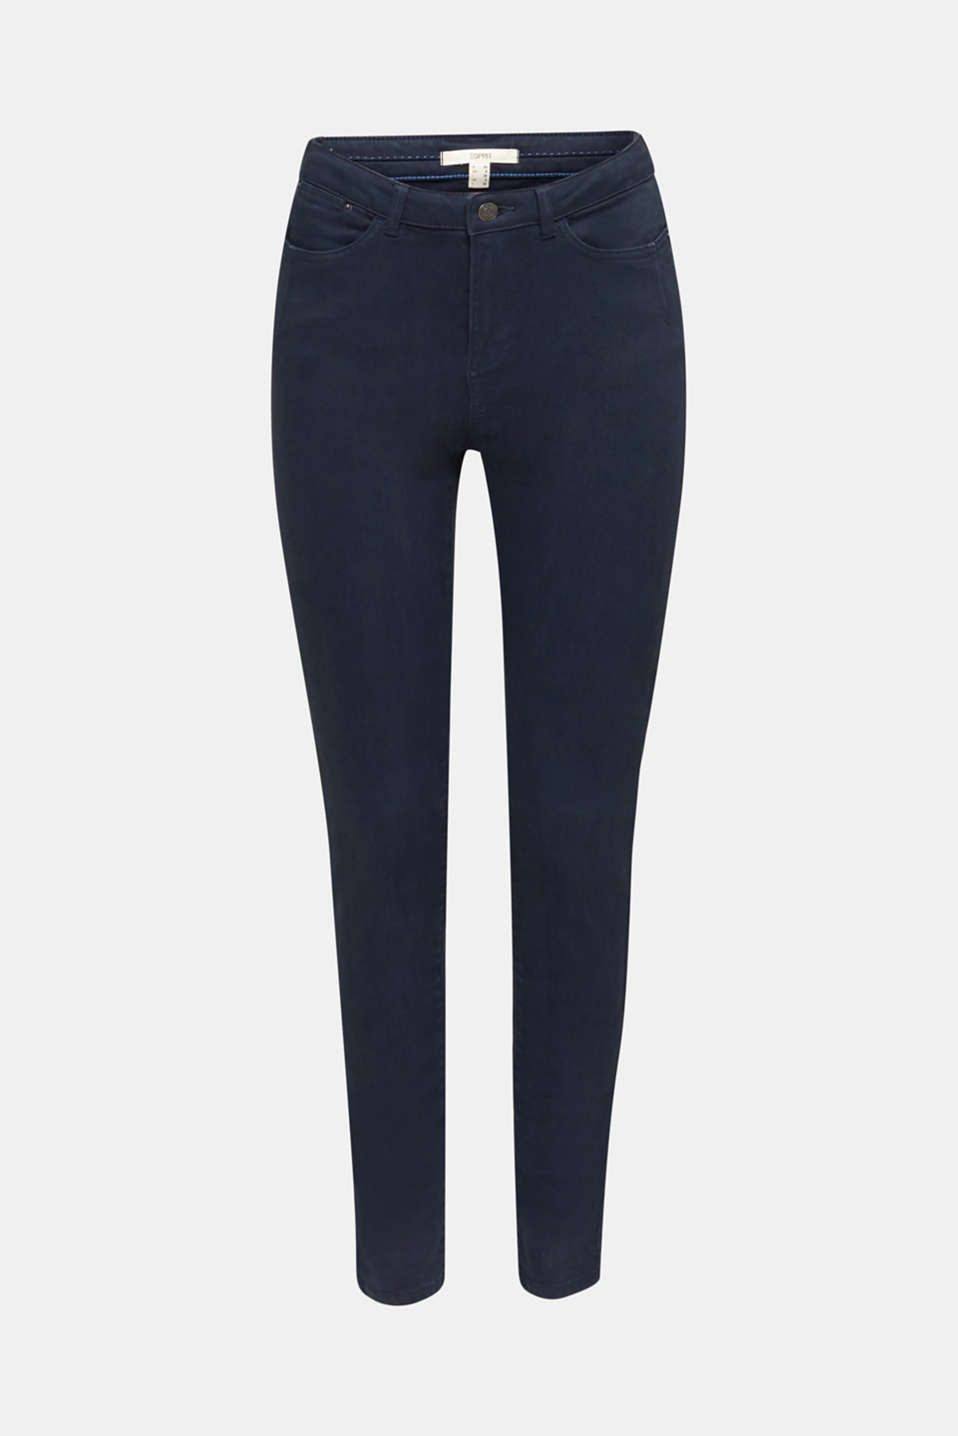 Jeans with a figure-contouring effect, NAVY, detail image number 6